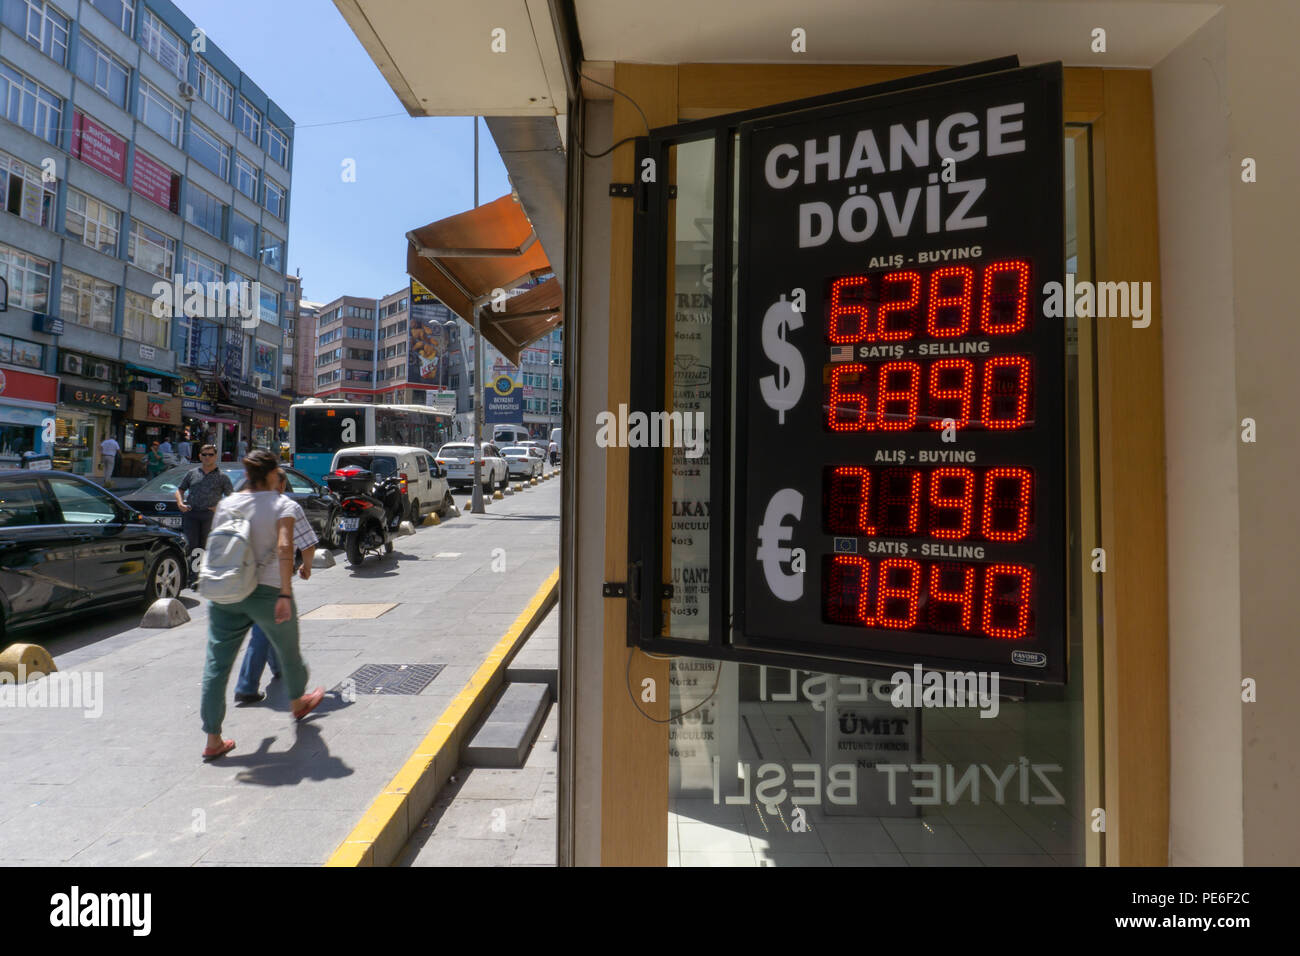 Istanbul, Turkey. 13th August, 2018. he Turkish Lira sank to a record low and a bad day for Turkish bazaars while markets rattled Credit: Engin Karaman/Alamy Live News Stock Photo